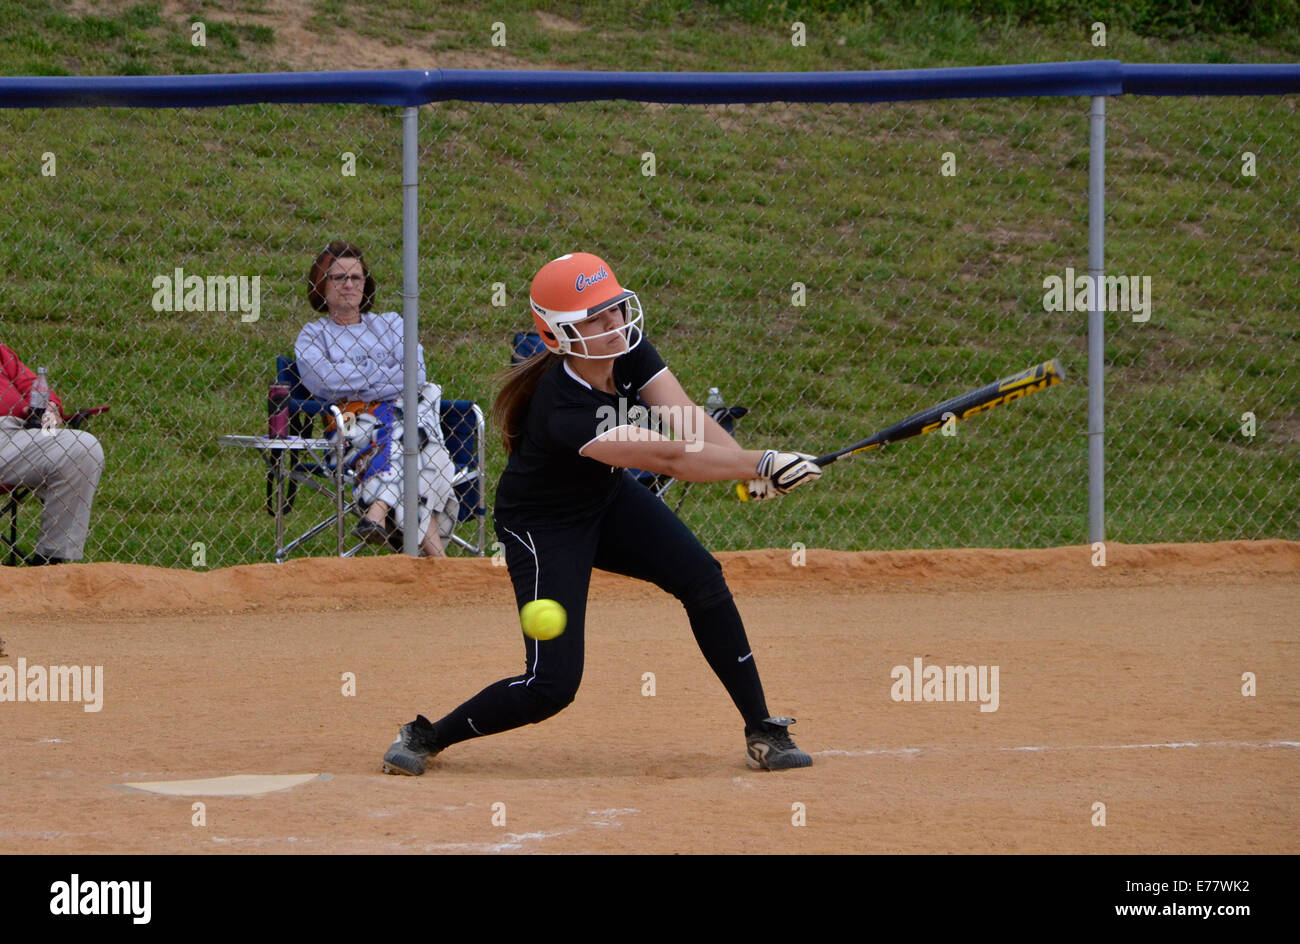 Hitting a foul ball in a high school softball game - Stock Image